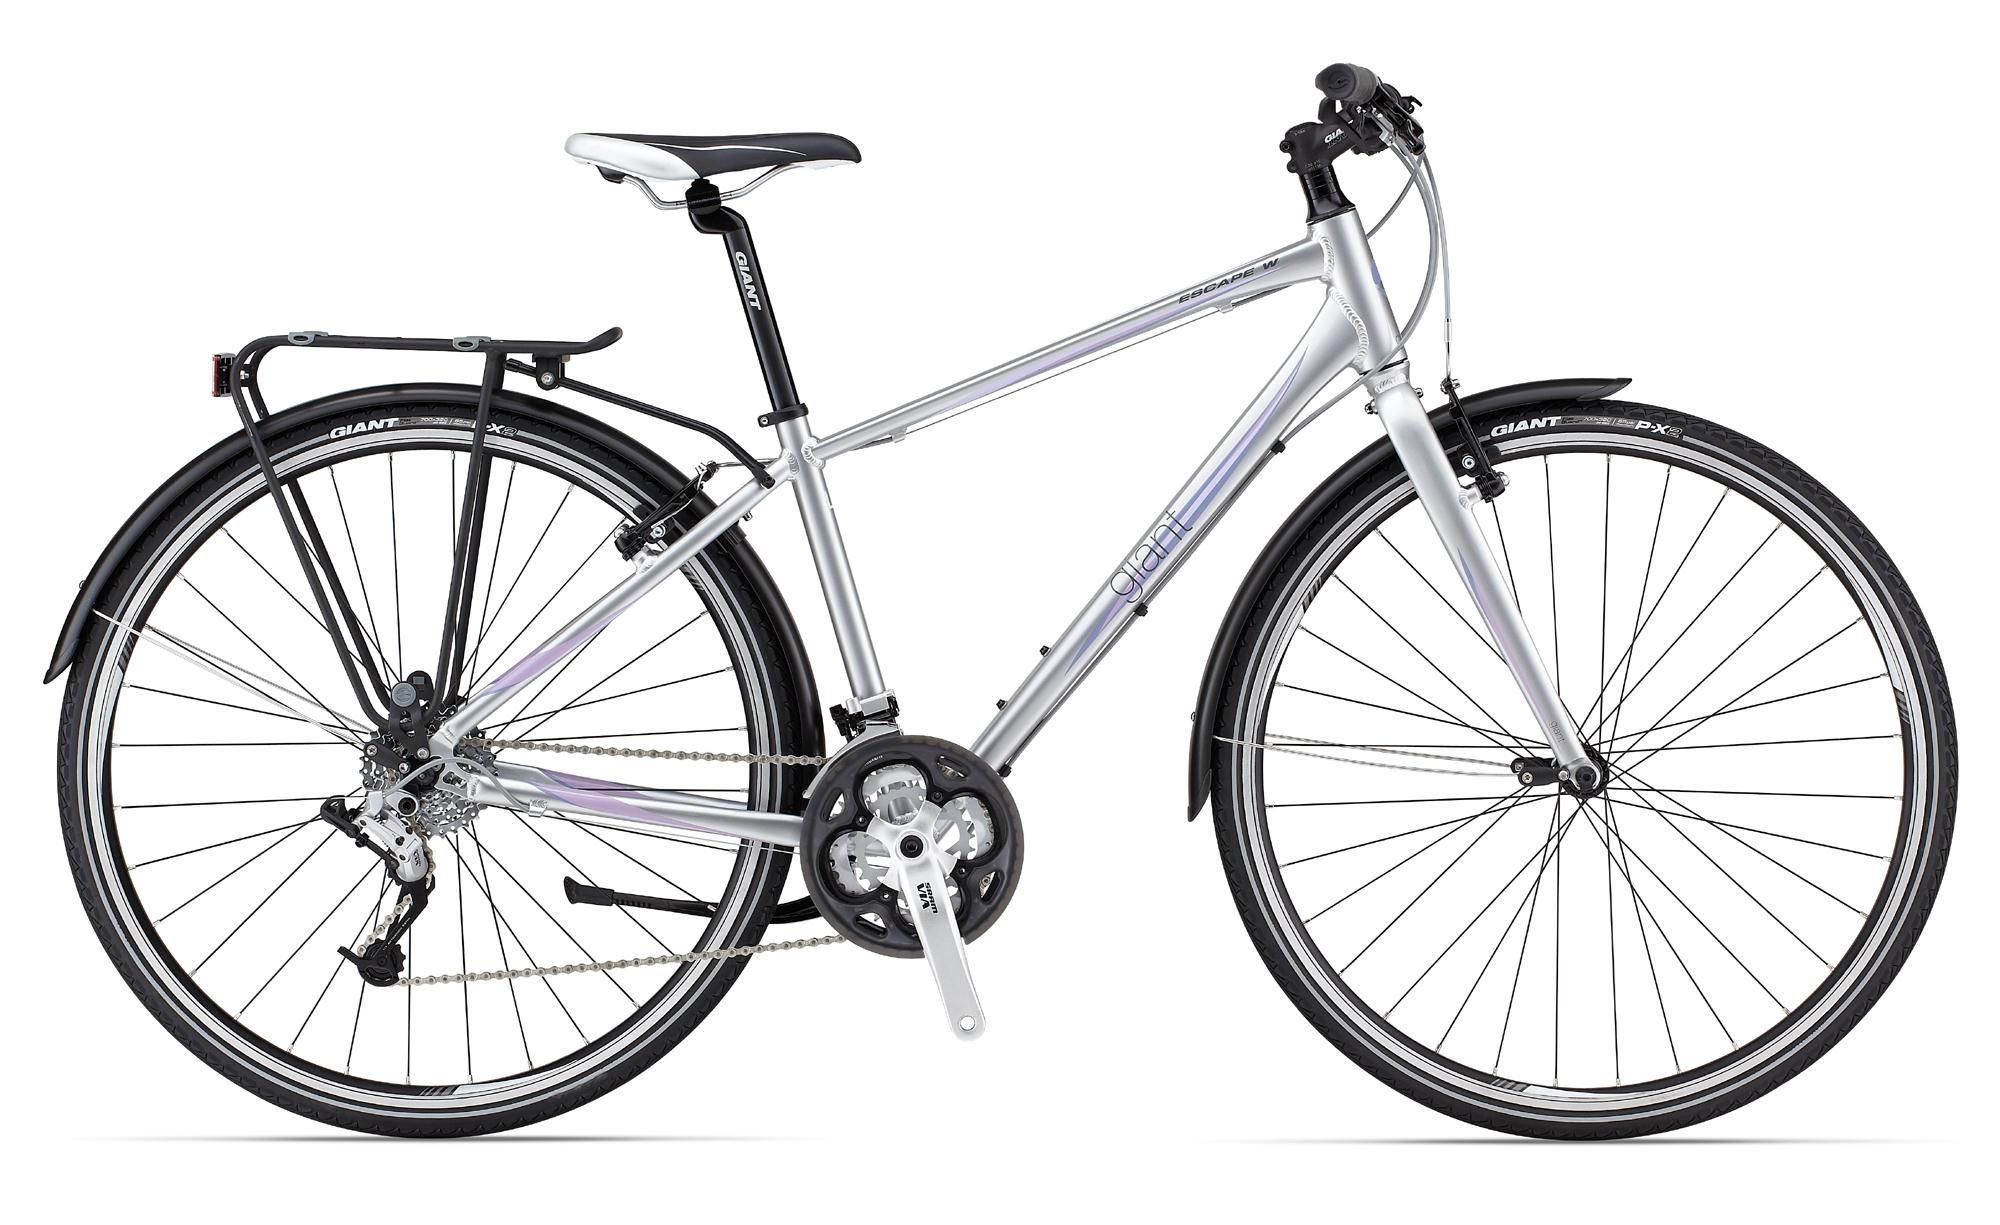 Escape City W 2013 Giant Bicycles United States Bicycle Bicycle Maintenance Giant Bikes